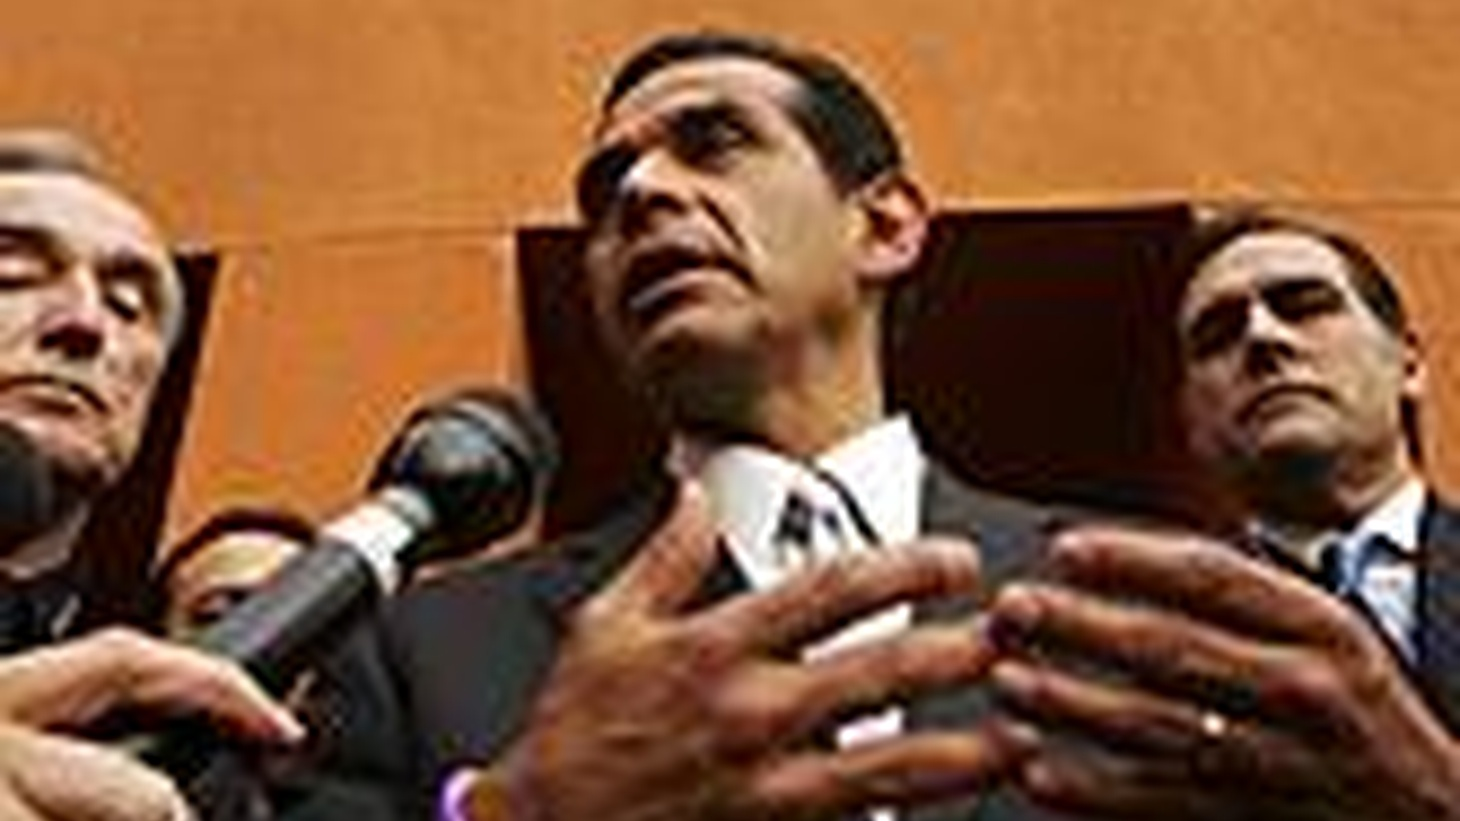 Mayor Villaraigosa says gangs are his number one priority. One expert complains that his budget provides a tiny fraction of what's needed to deal with a problem that has plagued LA for generations. City Hall says first, it's time for an audit. Does this mean just another study, or a real effort to determine what works and what doesn't?